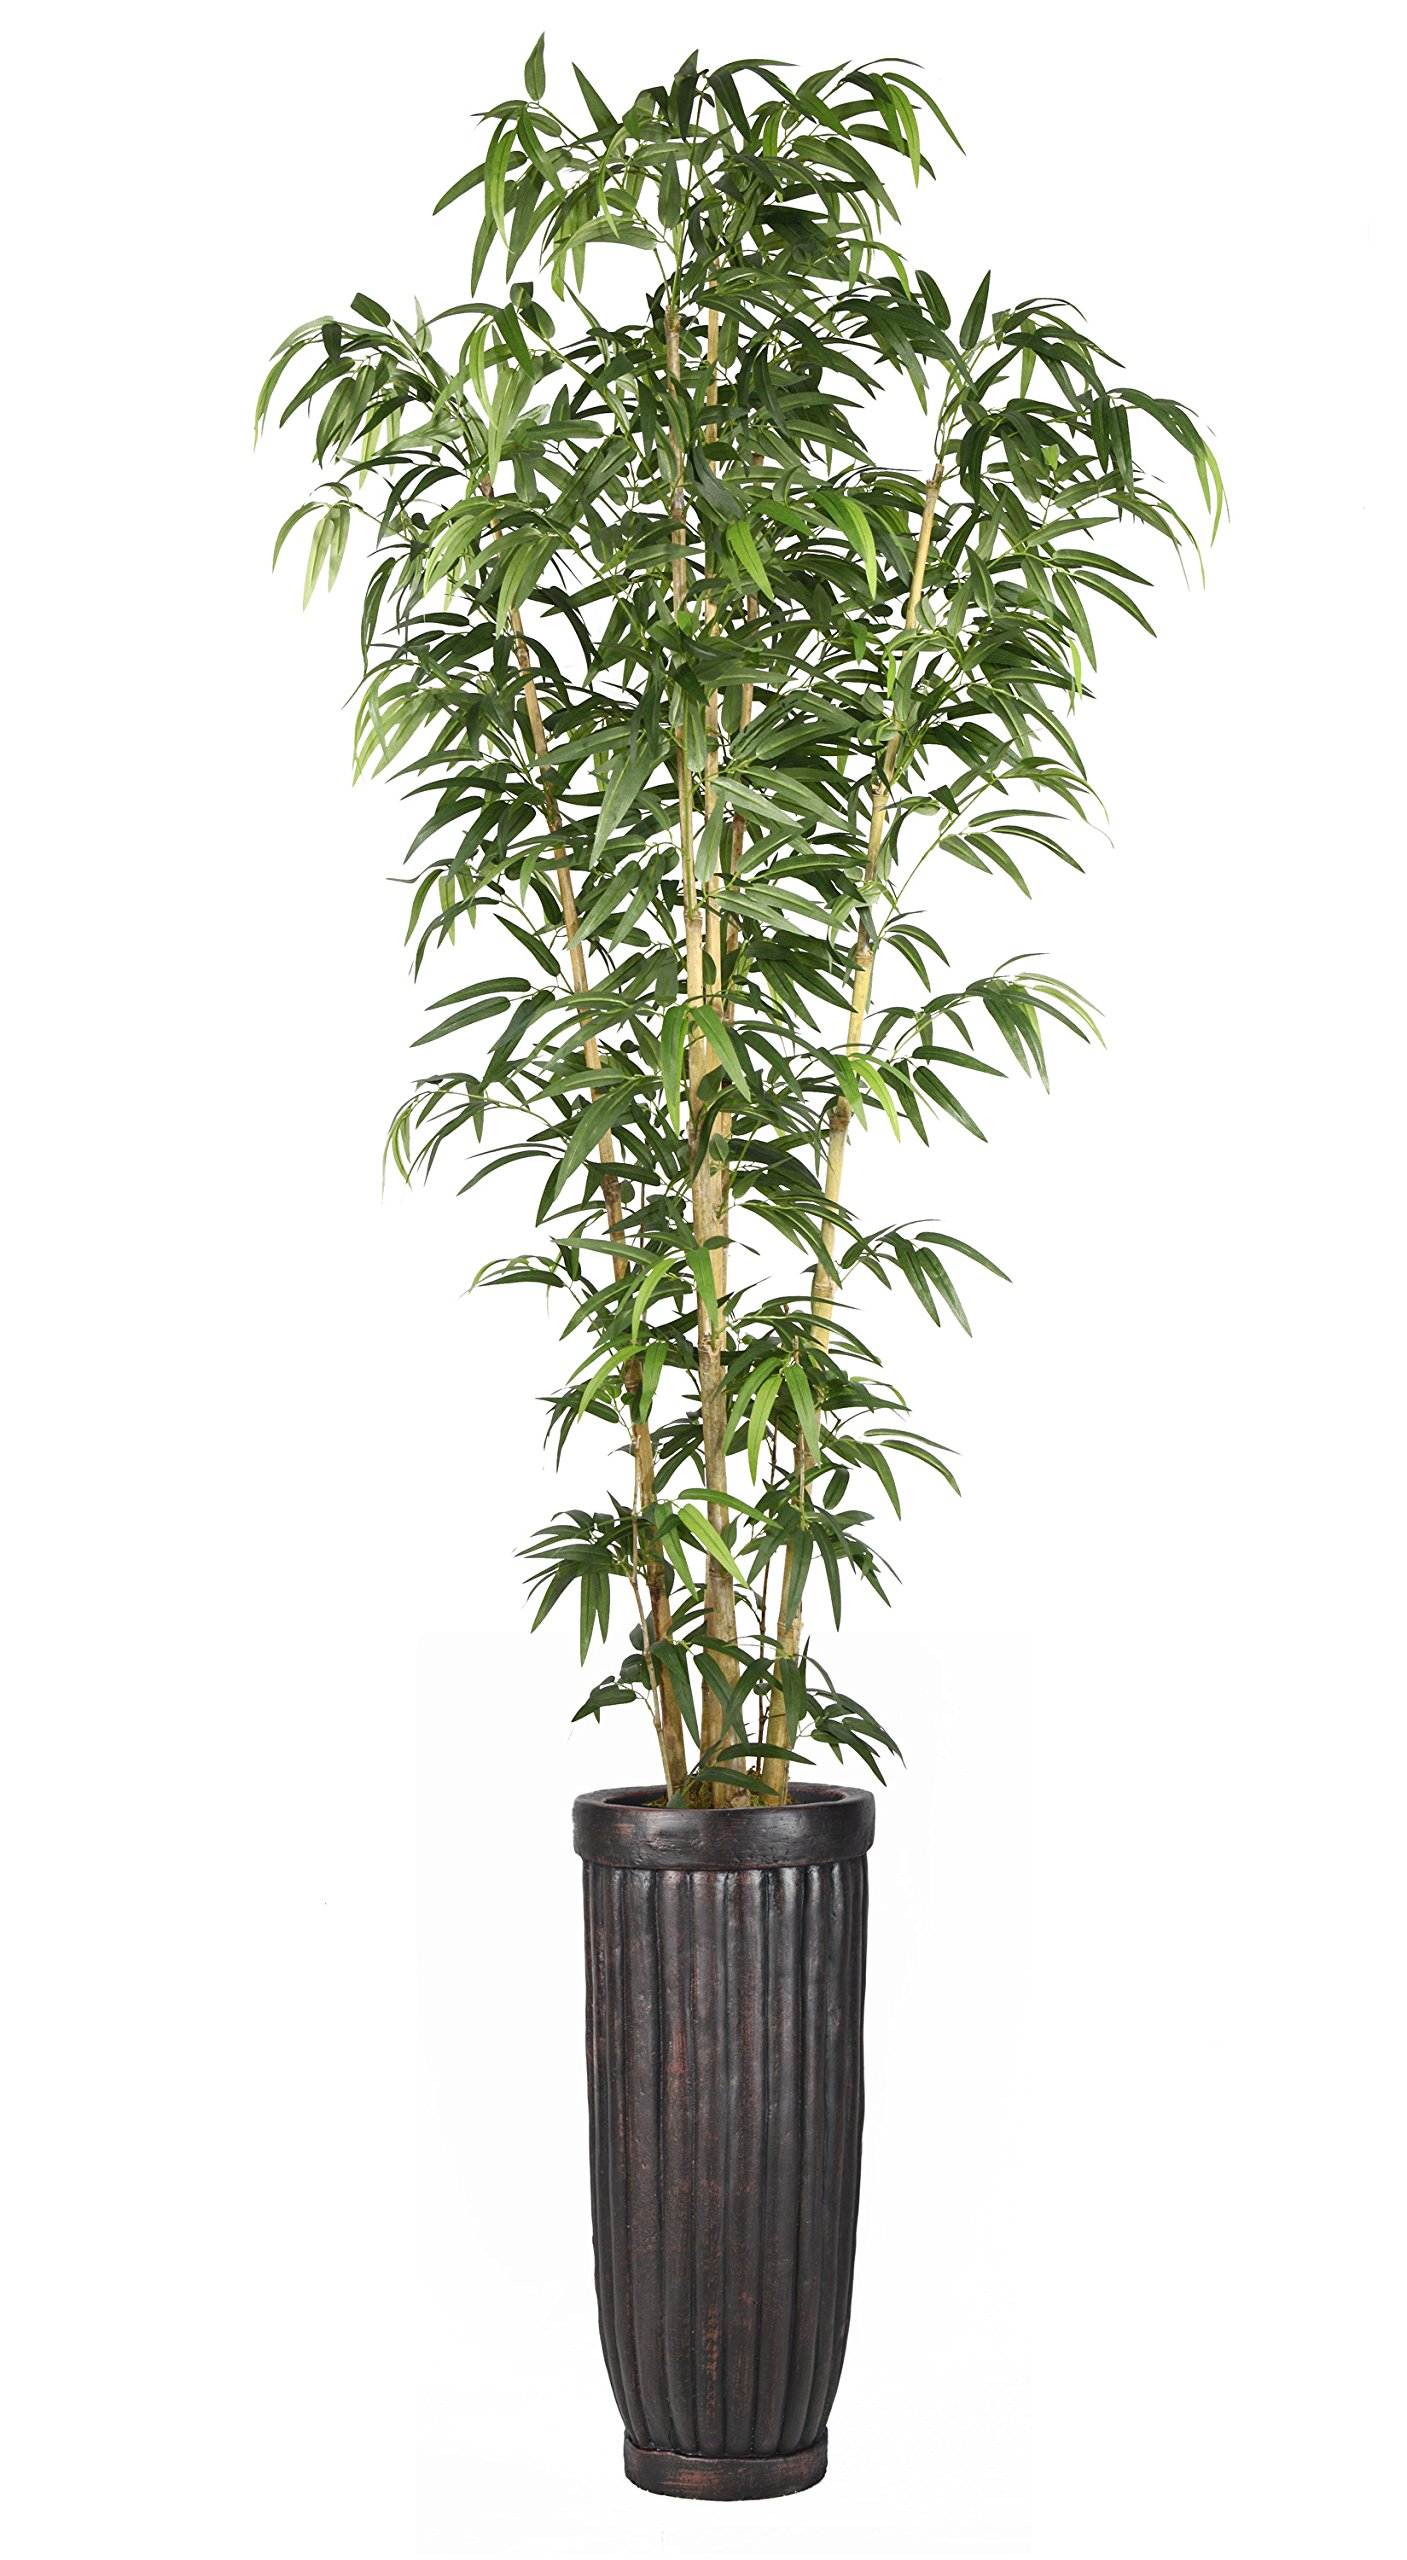 Vintage Home VHX116214 93'' Bamboo Tree in Natural Poles in Planter Tree by Vintage Home (Image #3)